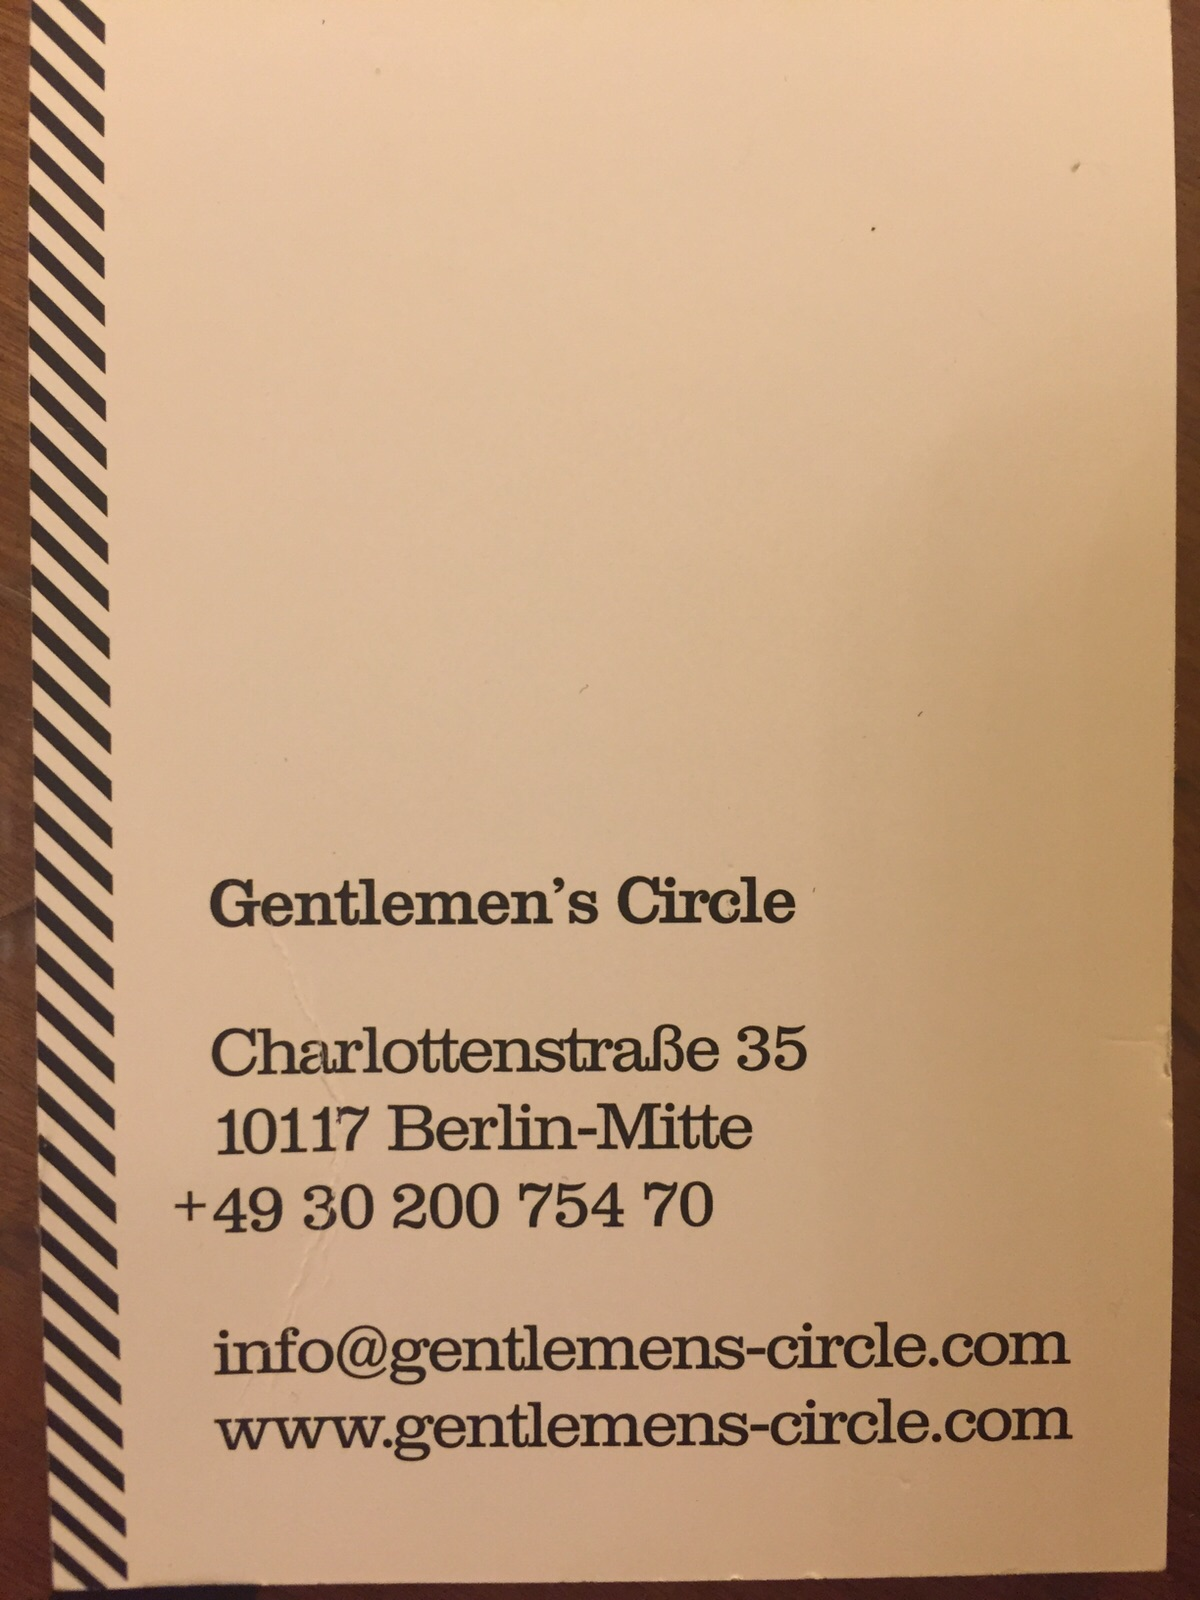 Gentlemen's Circle - DearHairdresser (1)